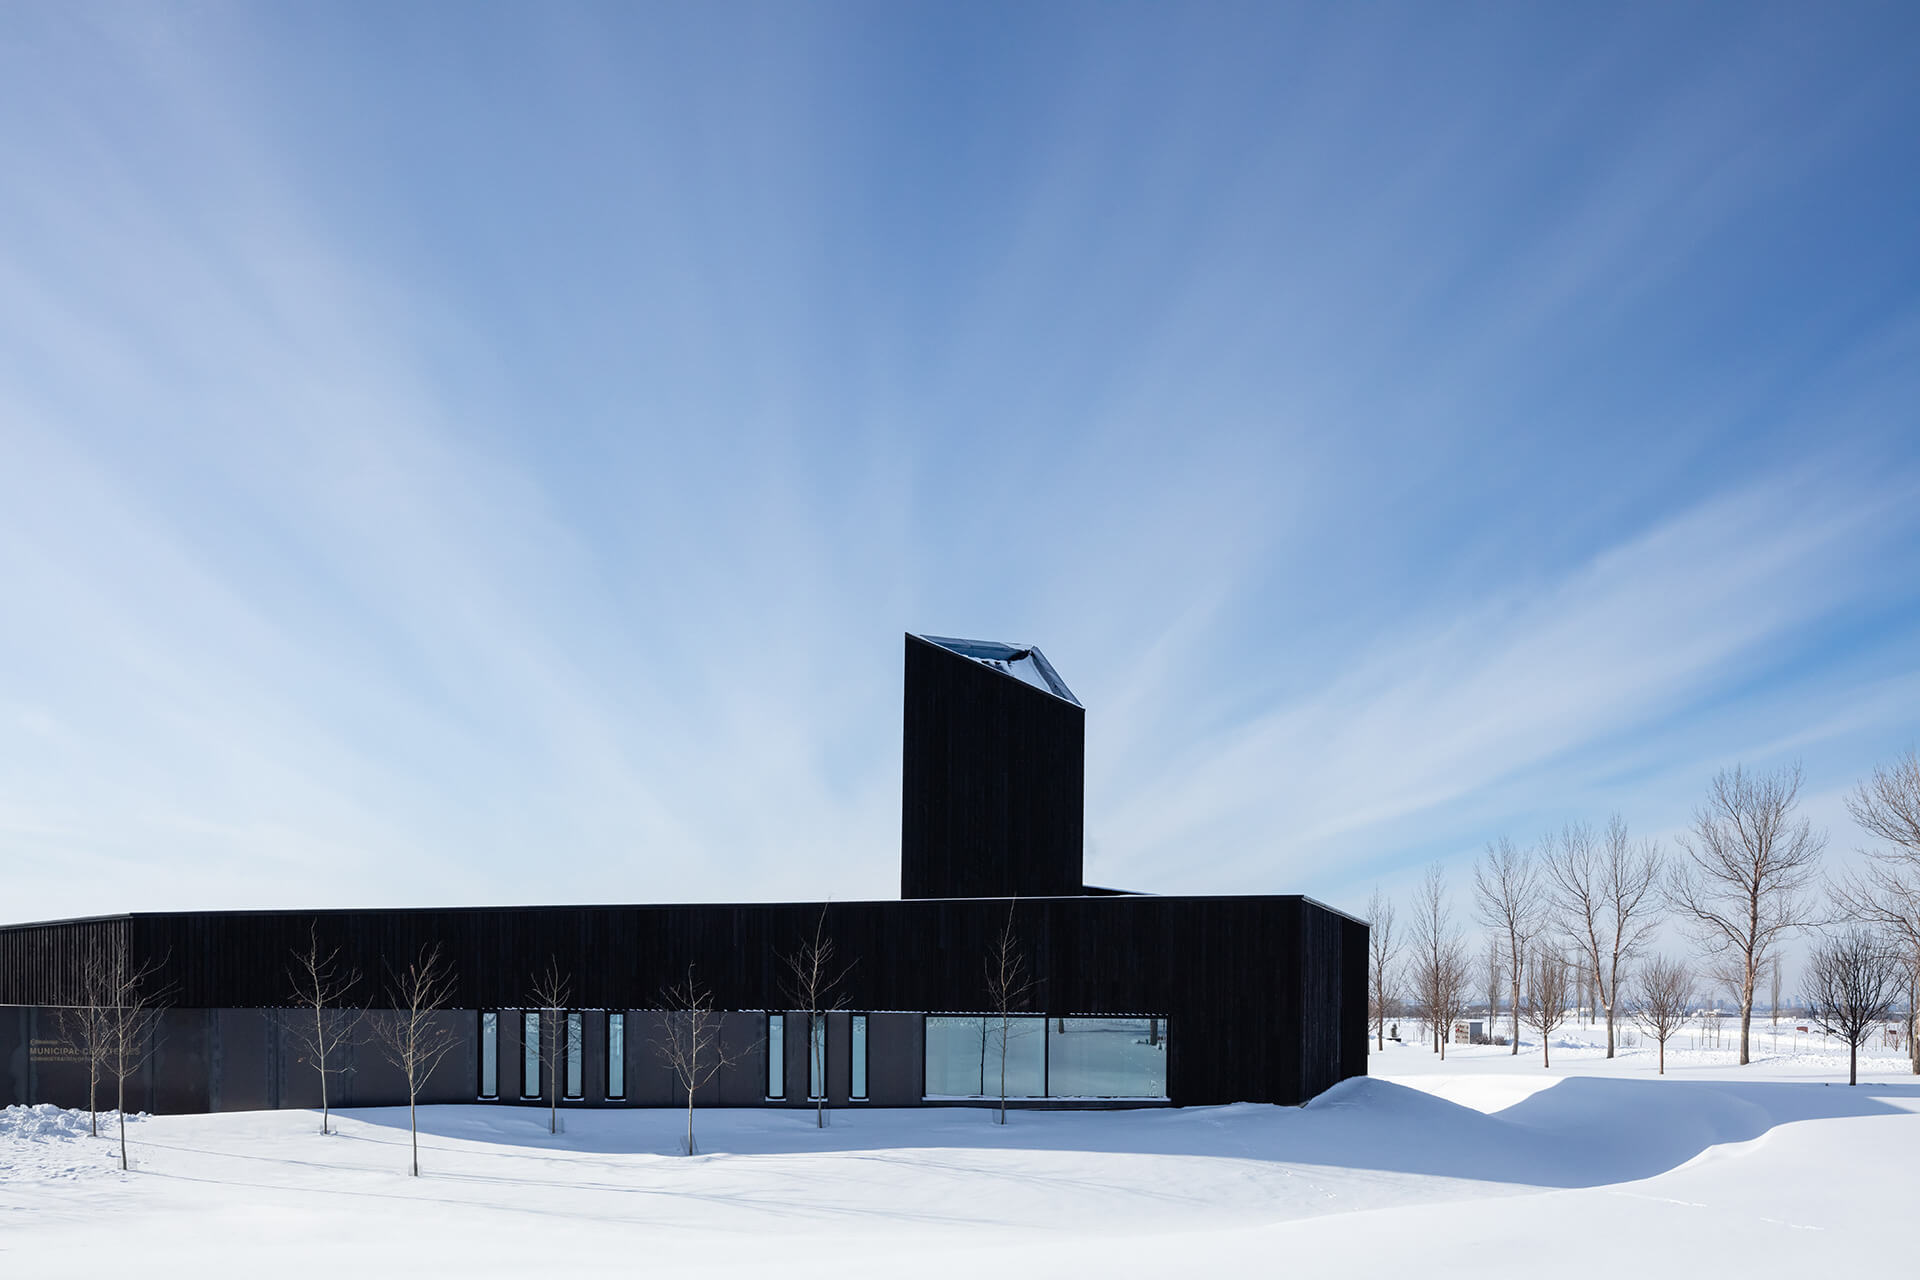 Apart from bringing in the sun, the tower stands as a marker in the landscape | South Haven Centre for Remembrance by Shape Architecture | STIRworld